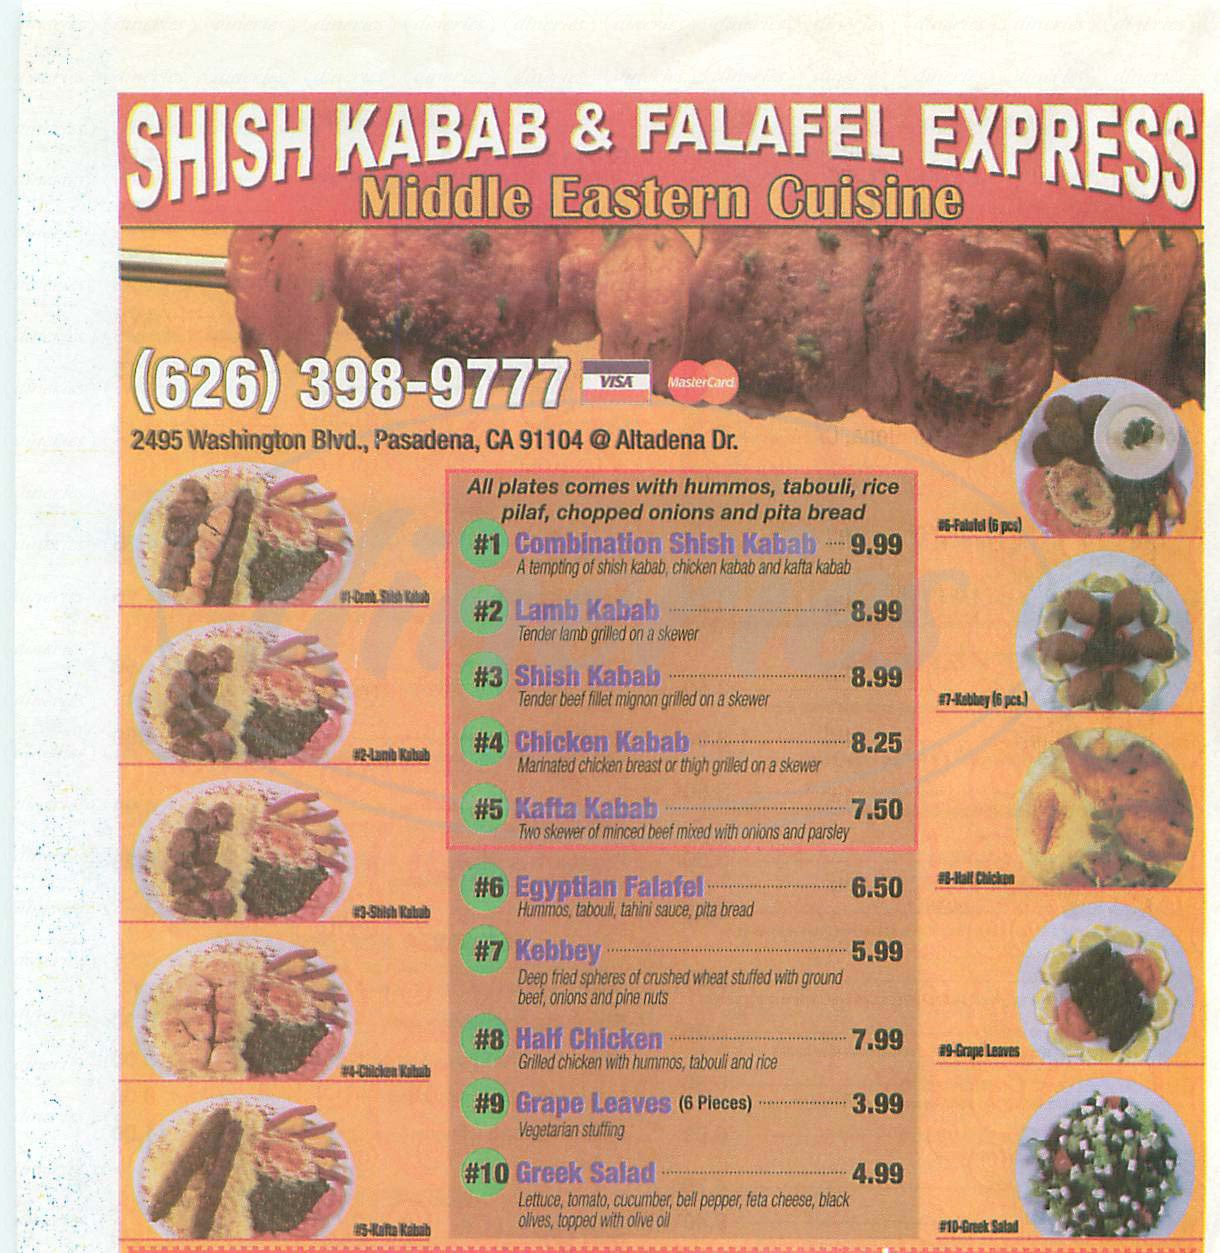 menu for Shish Kabab & Falafel Express